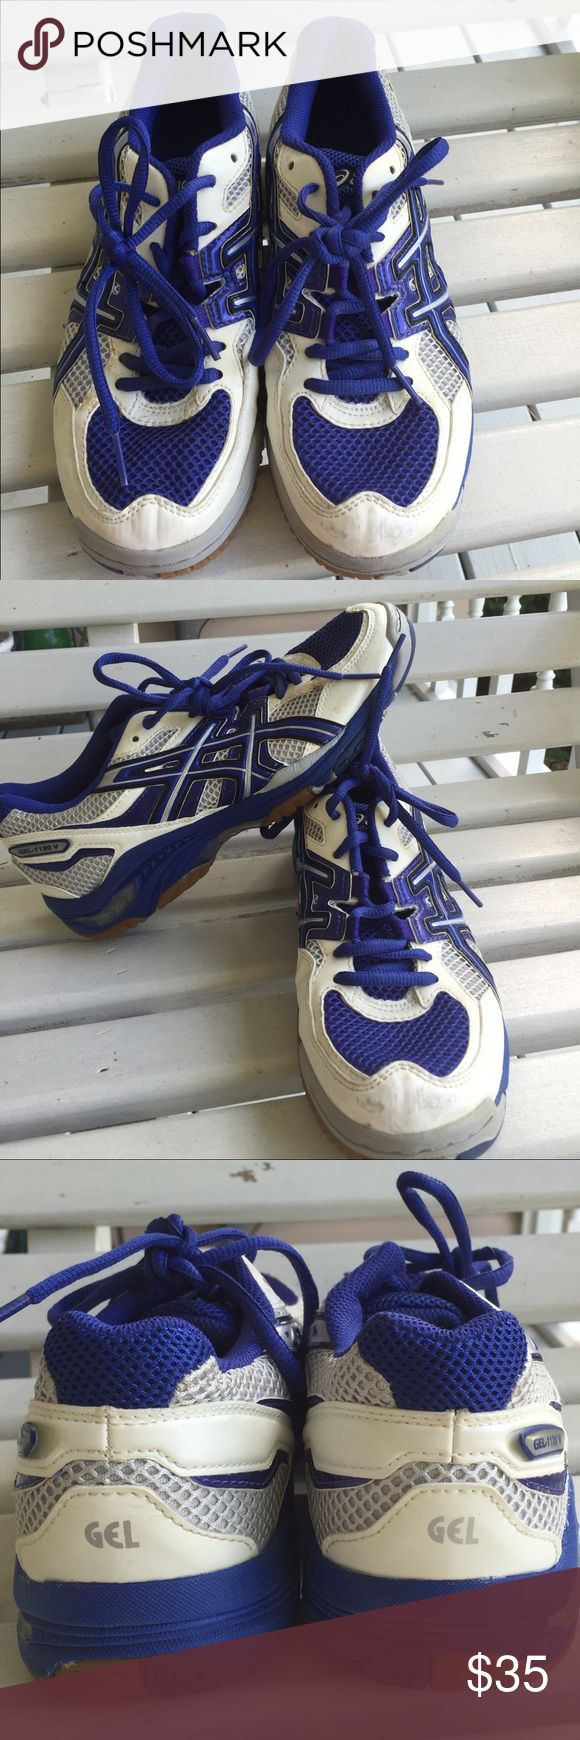 Royal blue Asics Volleyball Shoes These shoes are very gently used and allow for the best traction on a volleyball court. While there is minimal wear (see scuffing on left toe) they are still in very good shape. Asics Shoes Athletic Shoes